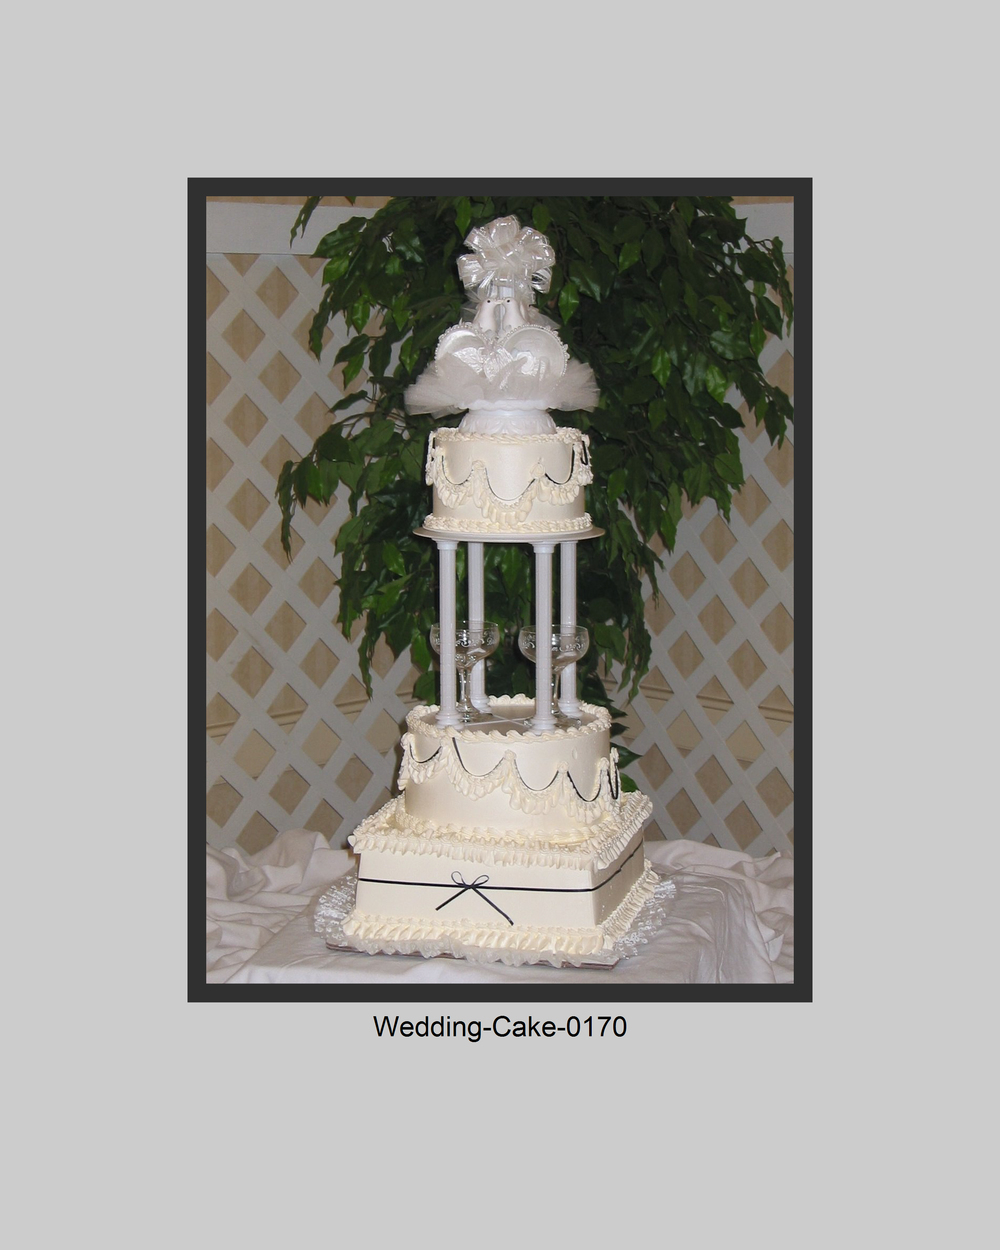 Wedding-Cake-Prints-0170.jpg